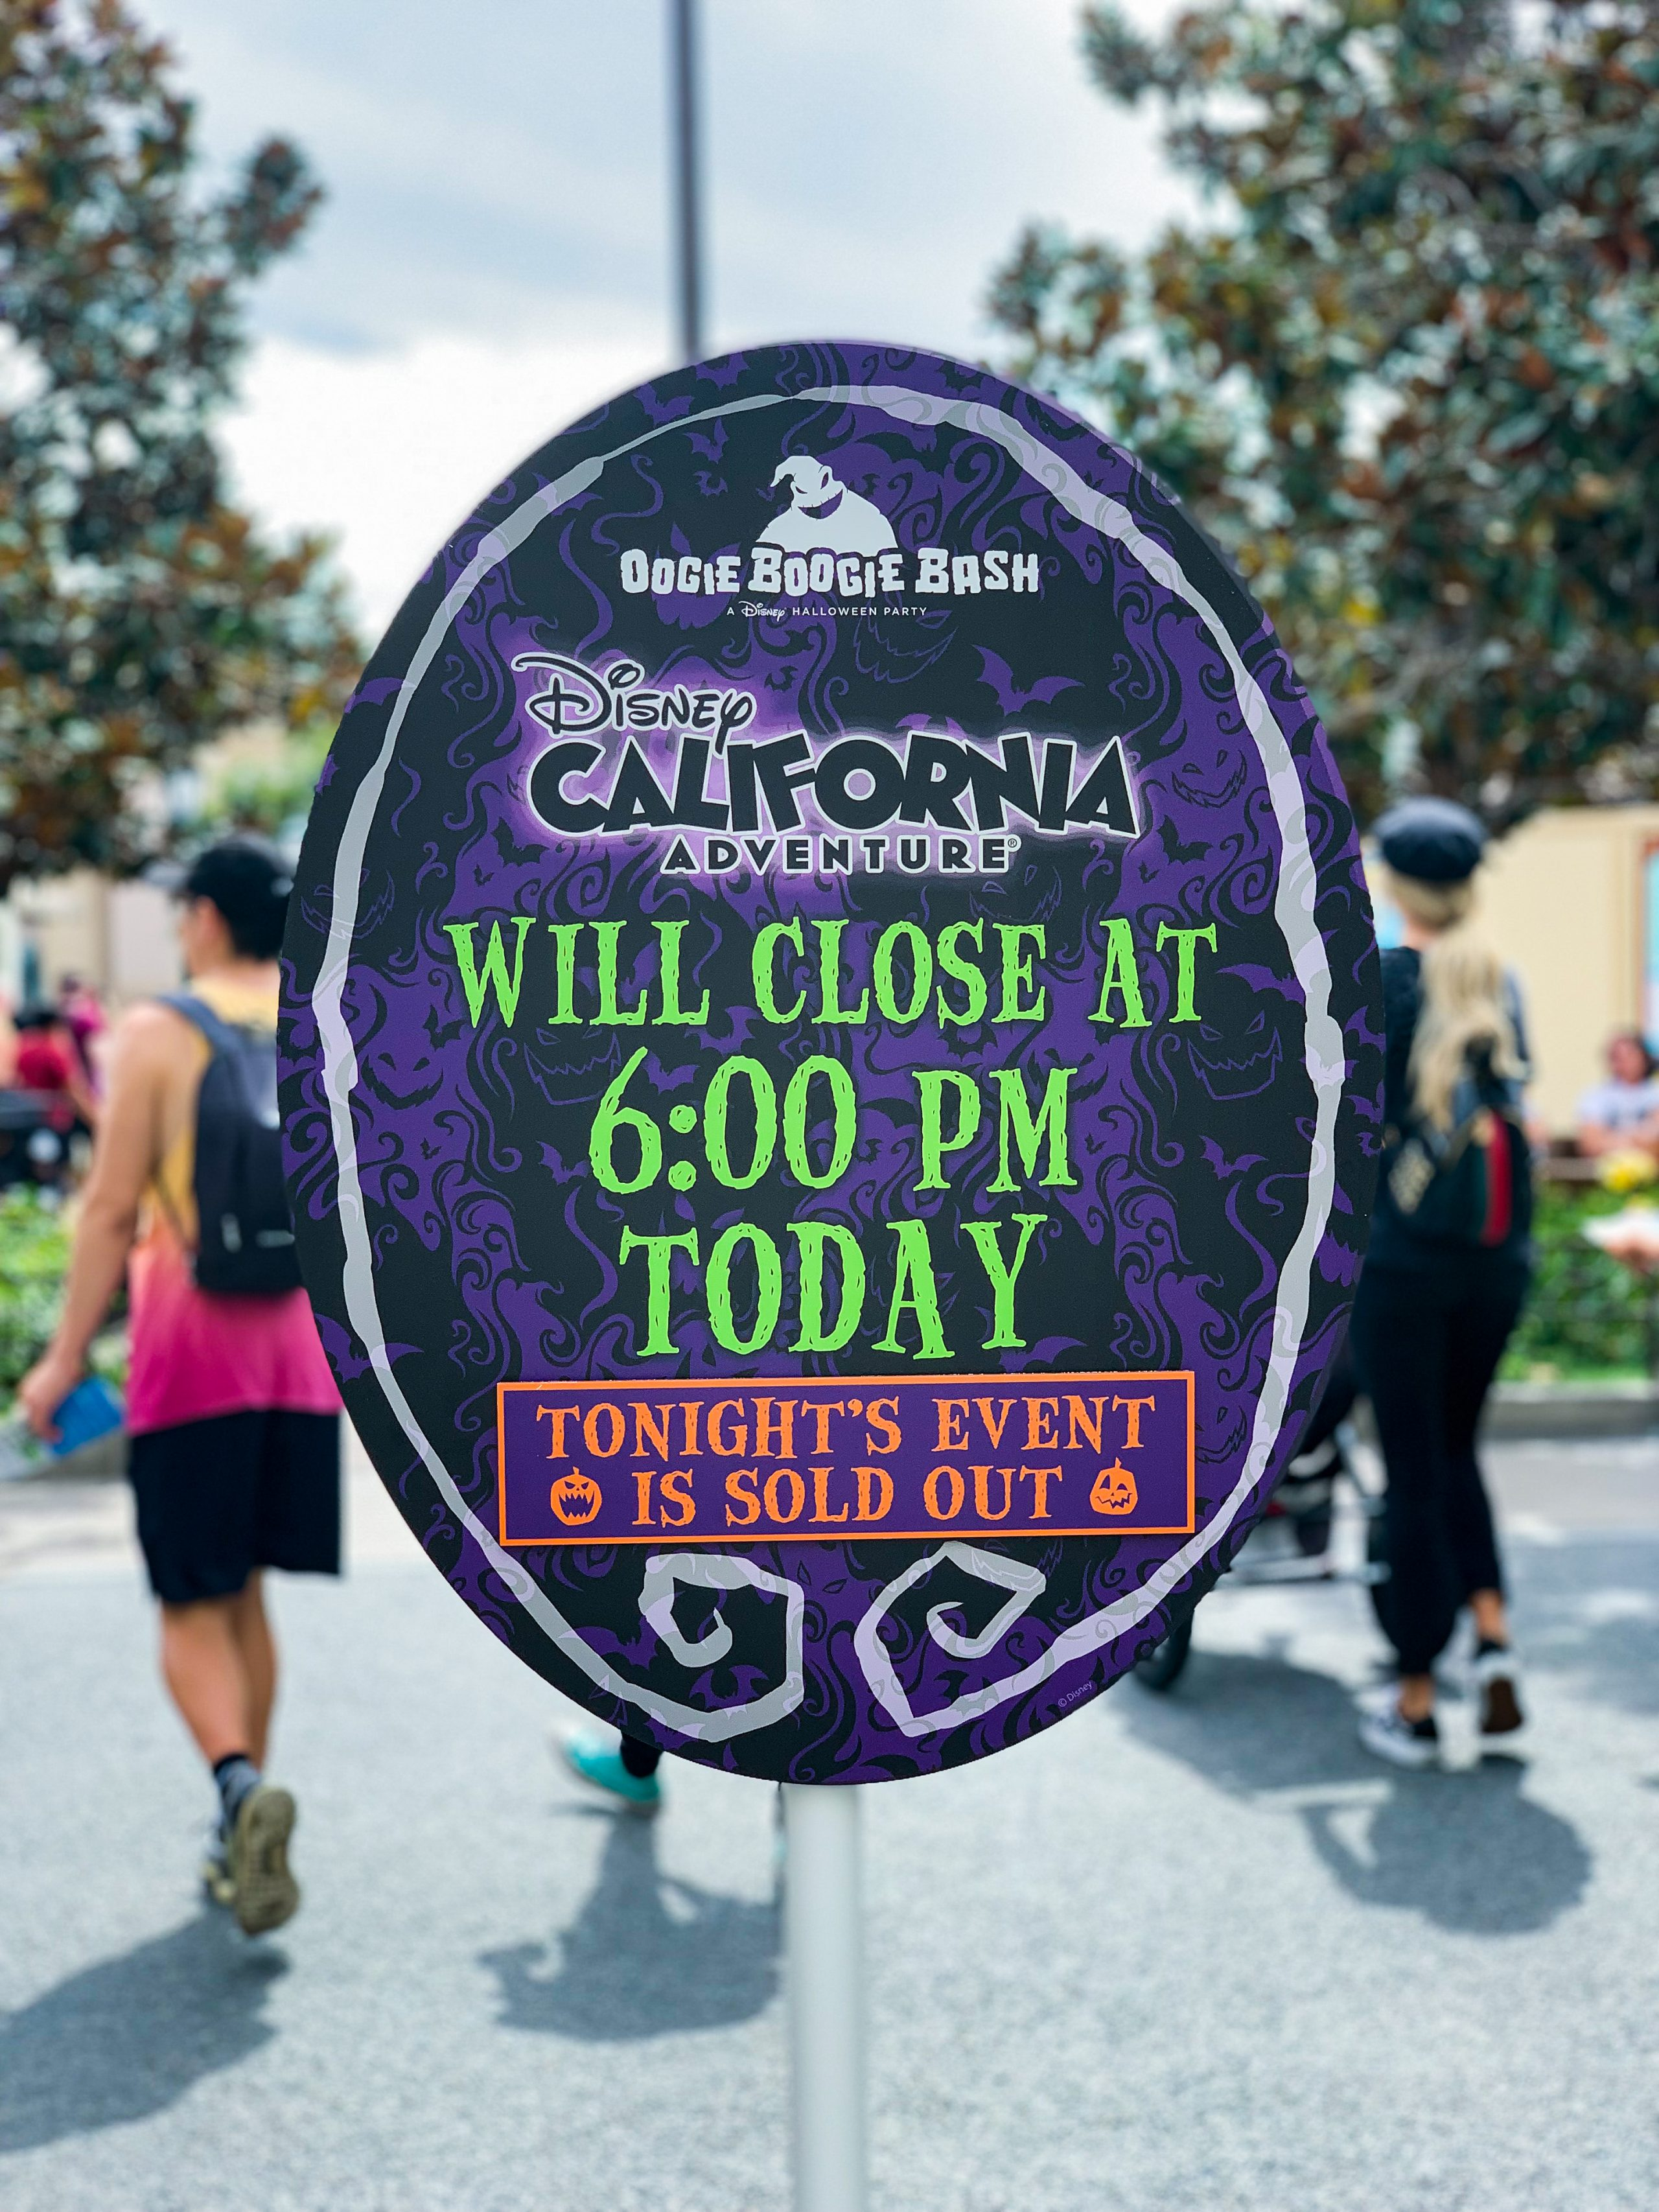 Heading to the Oogie Boogie Bash this year? This is the PERFECT schedule to insure that you hit EVERTHING!